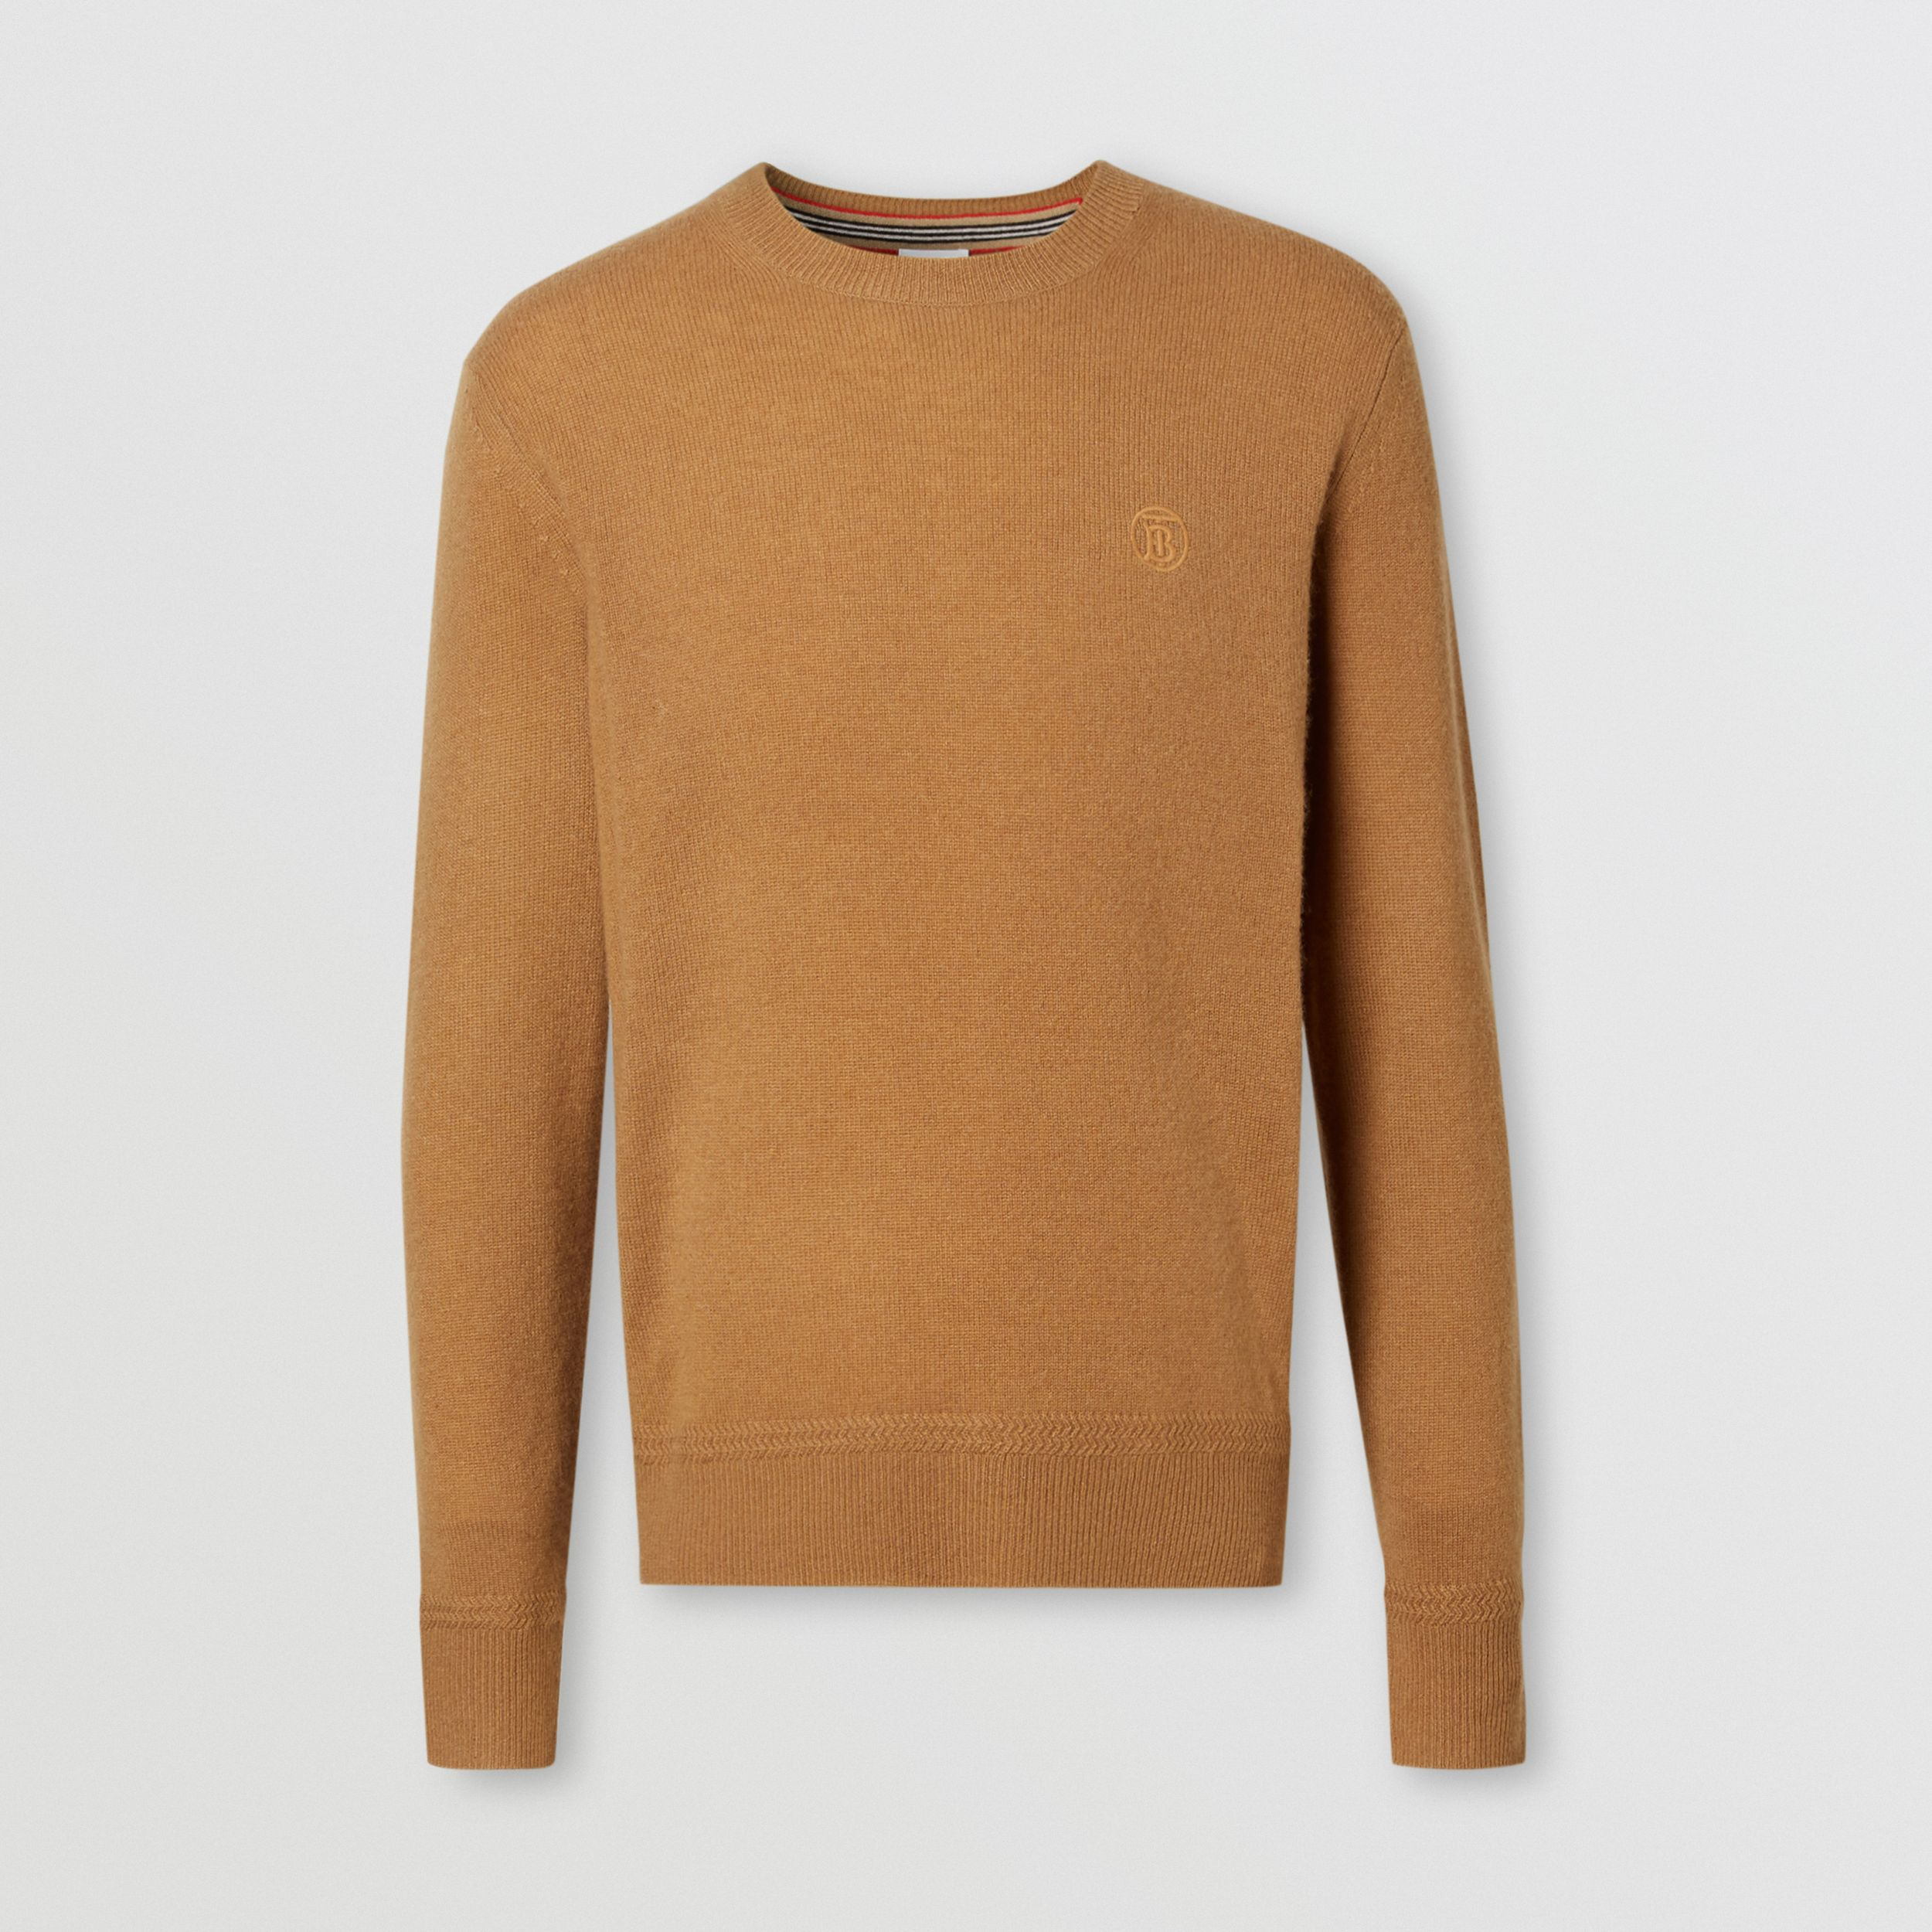 Monogram Motif Cashmere Sweater in Camel - Men | Burberry Singapore - 4